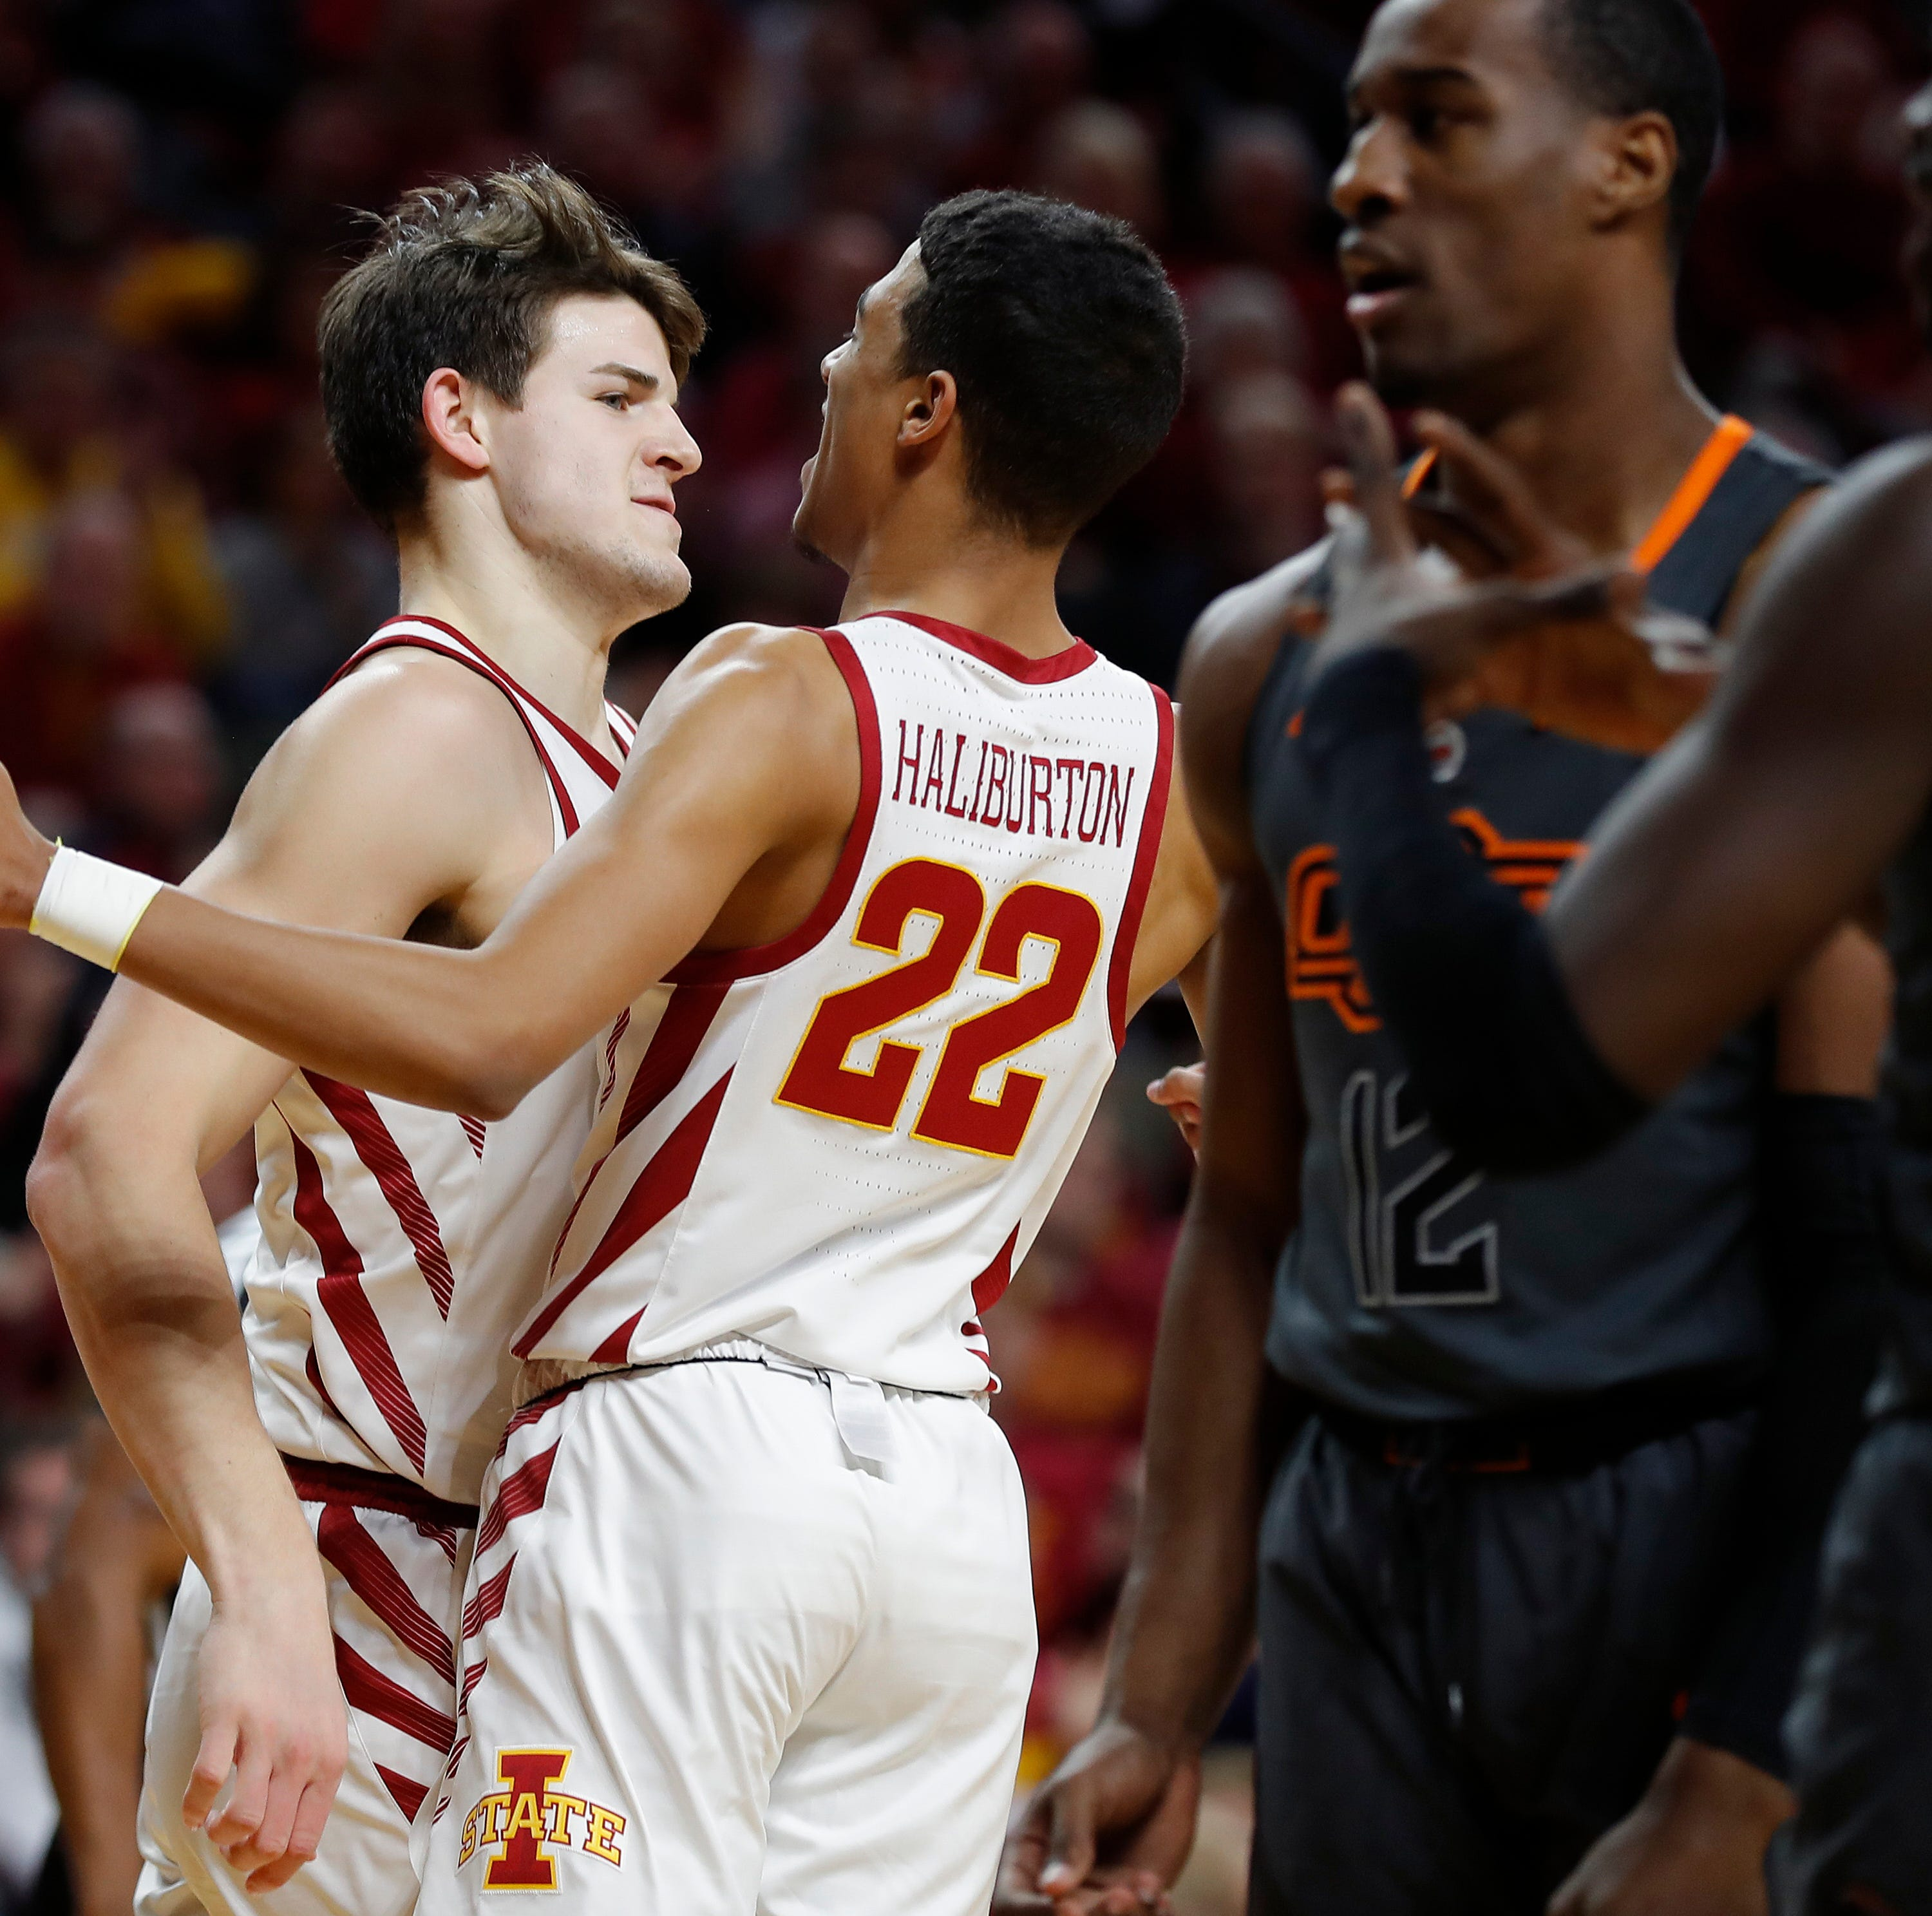 Peterson: Cam Lard played a huge role as Iowa State shares the Big 12 Conference lead